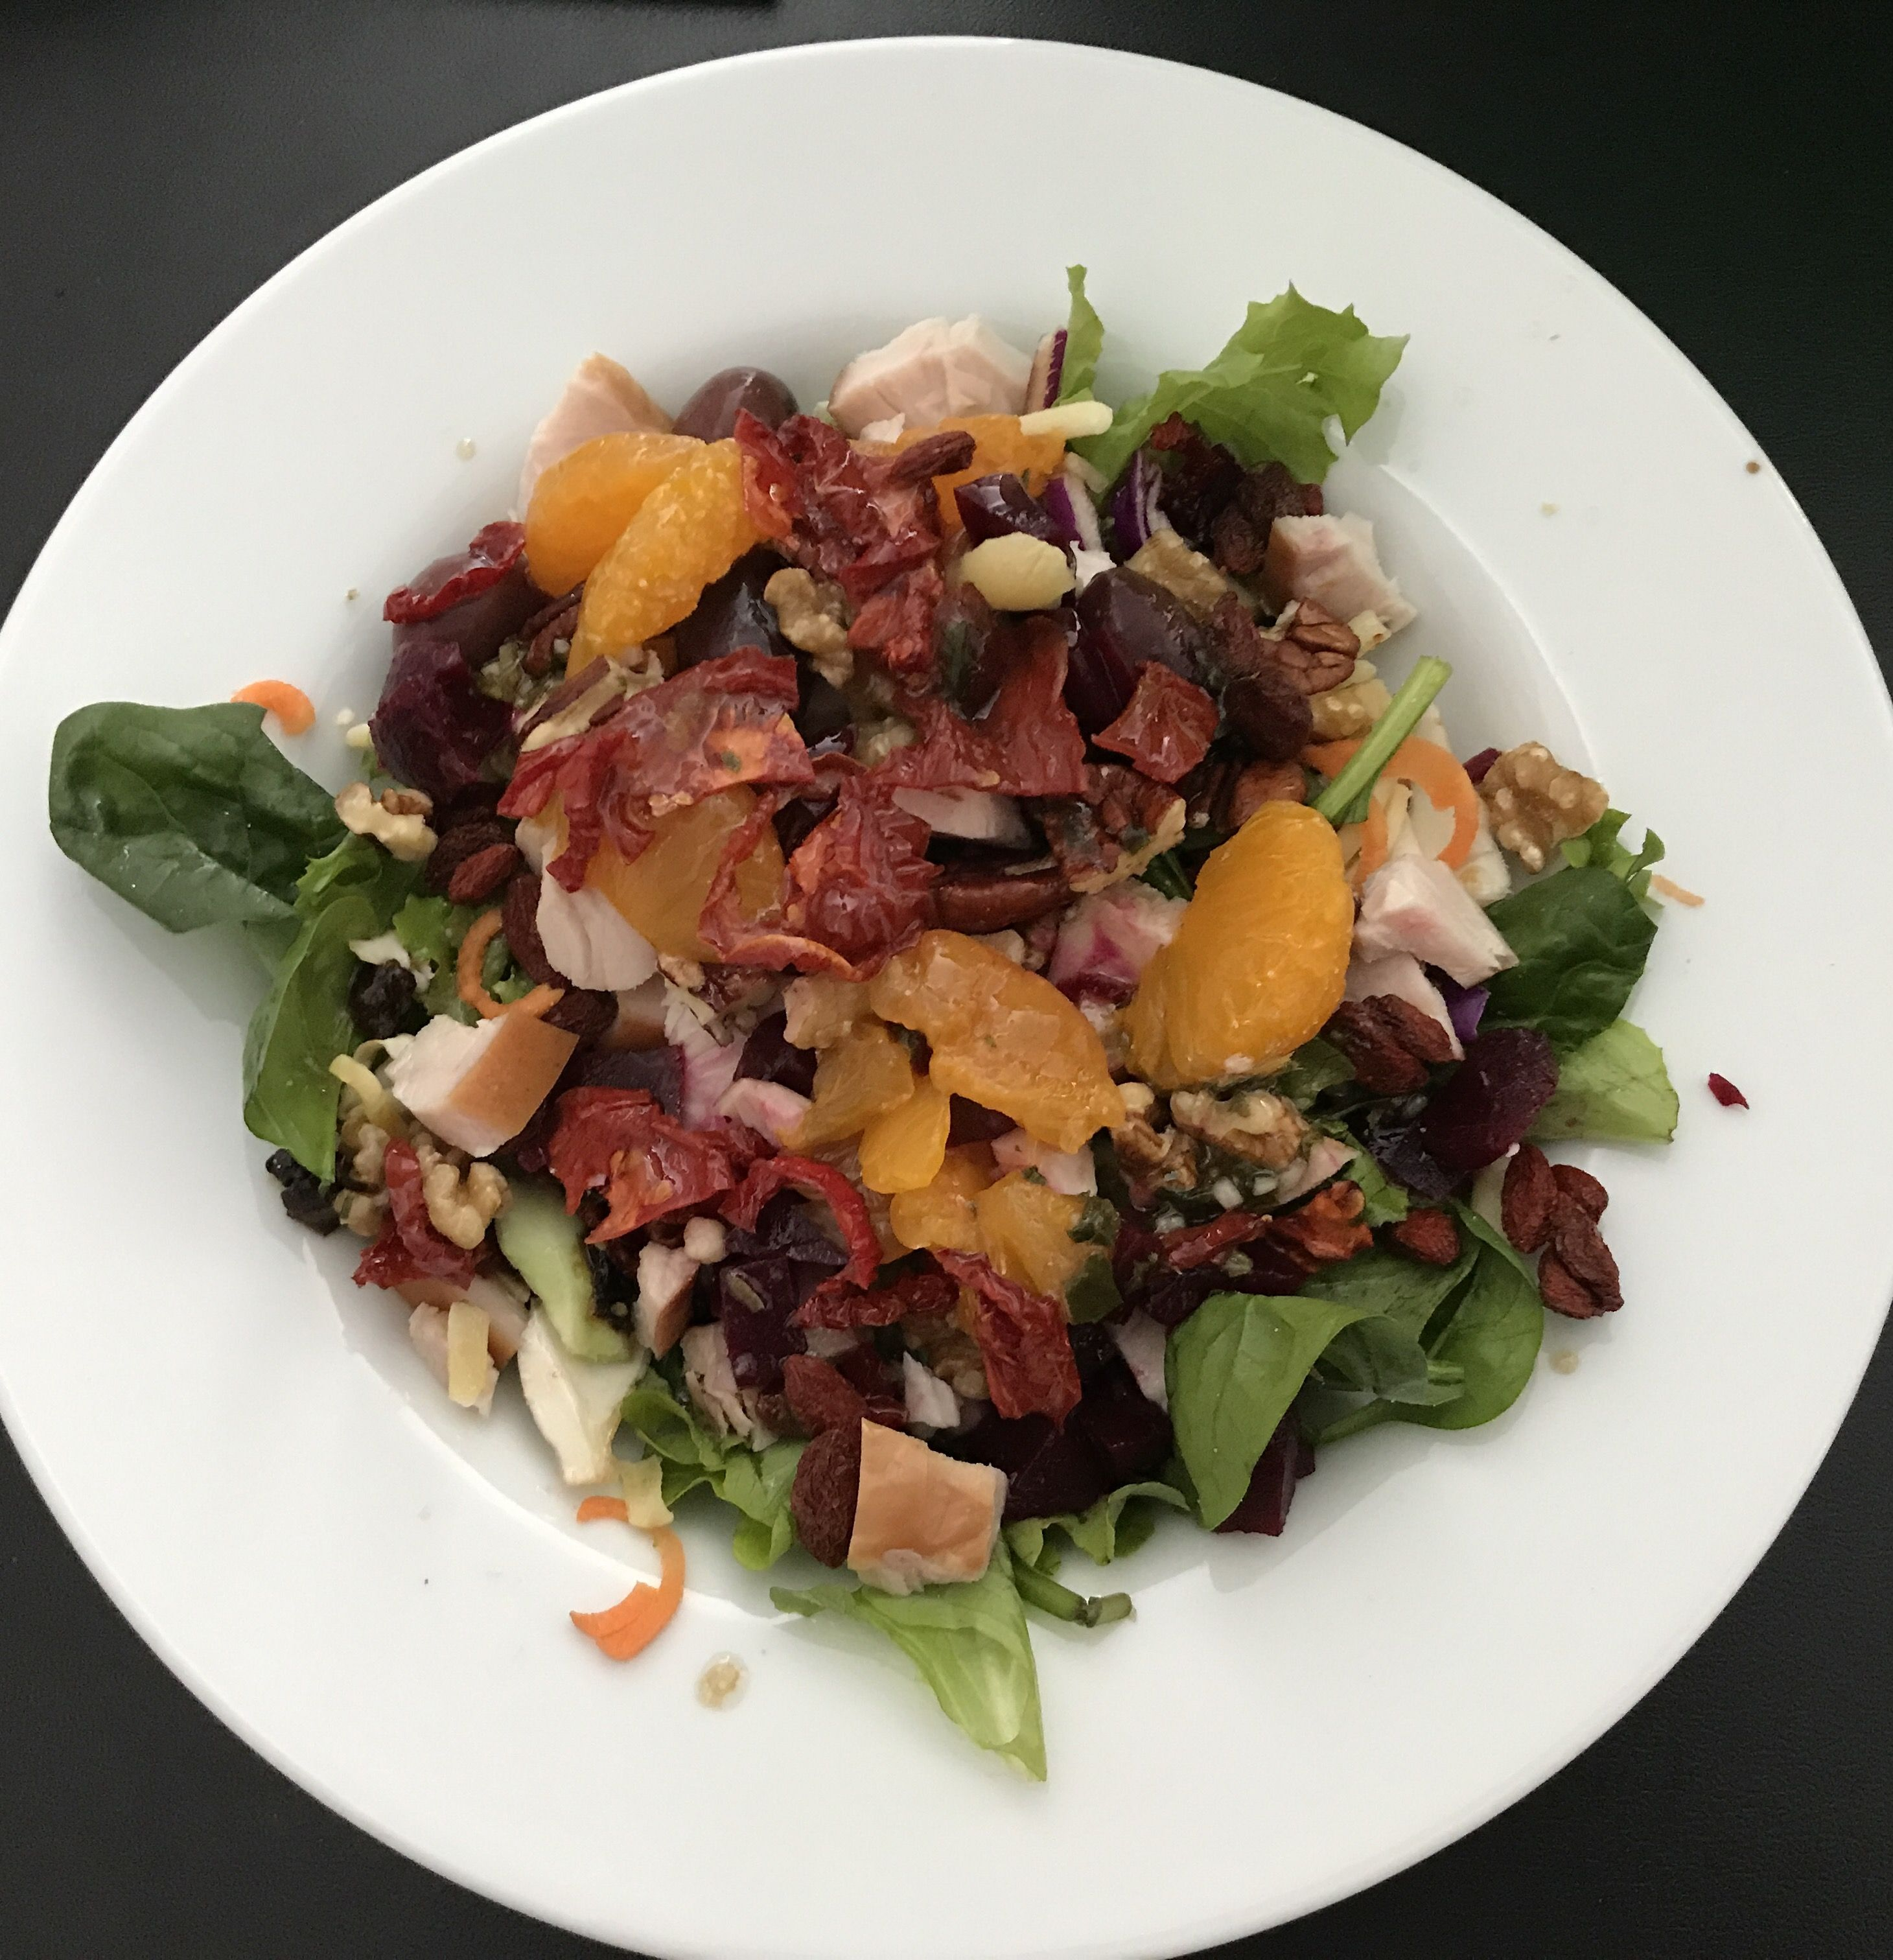 Lettuce Salad With L, Olives, Cranberries, Smoked Chicken